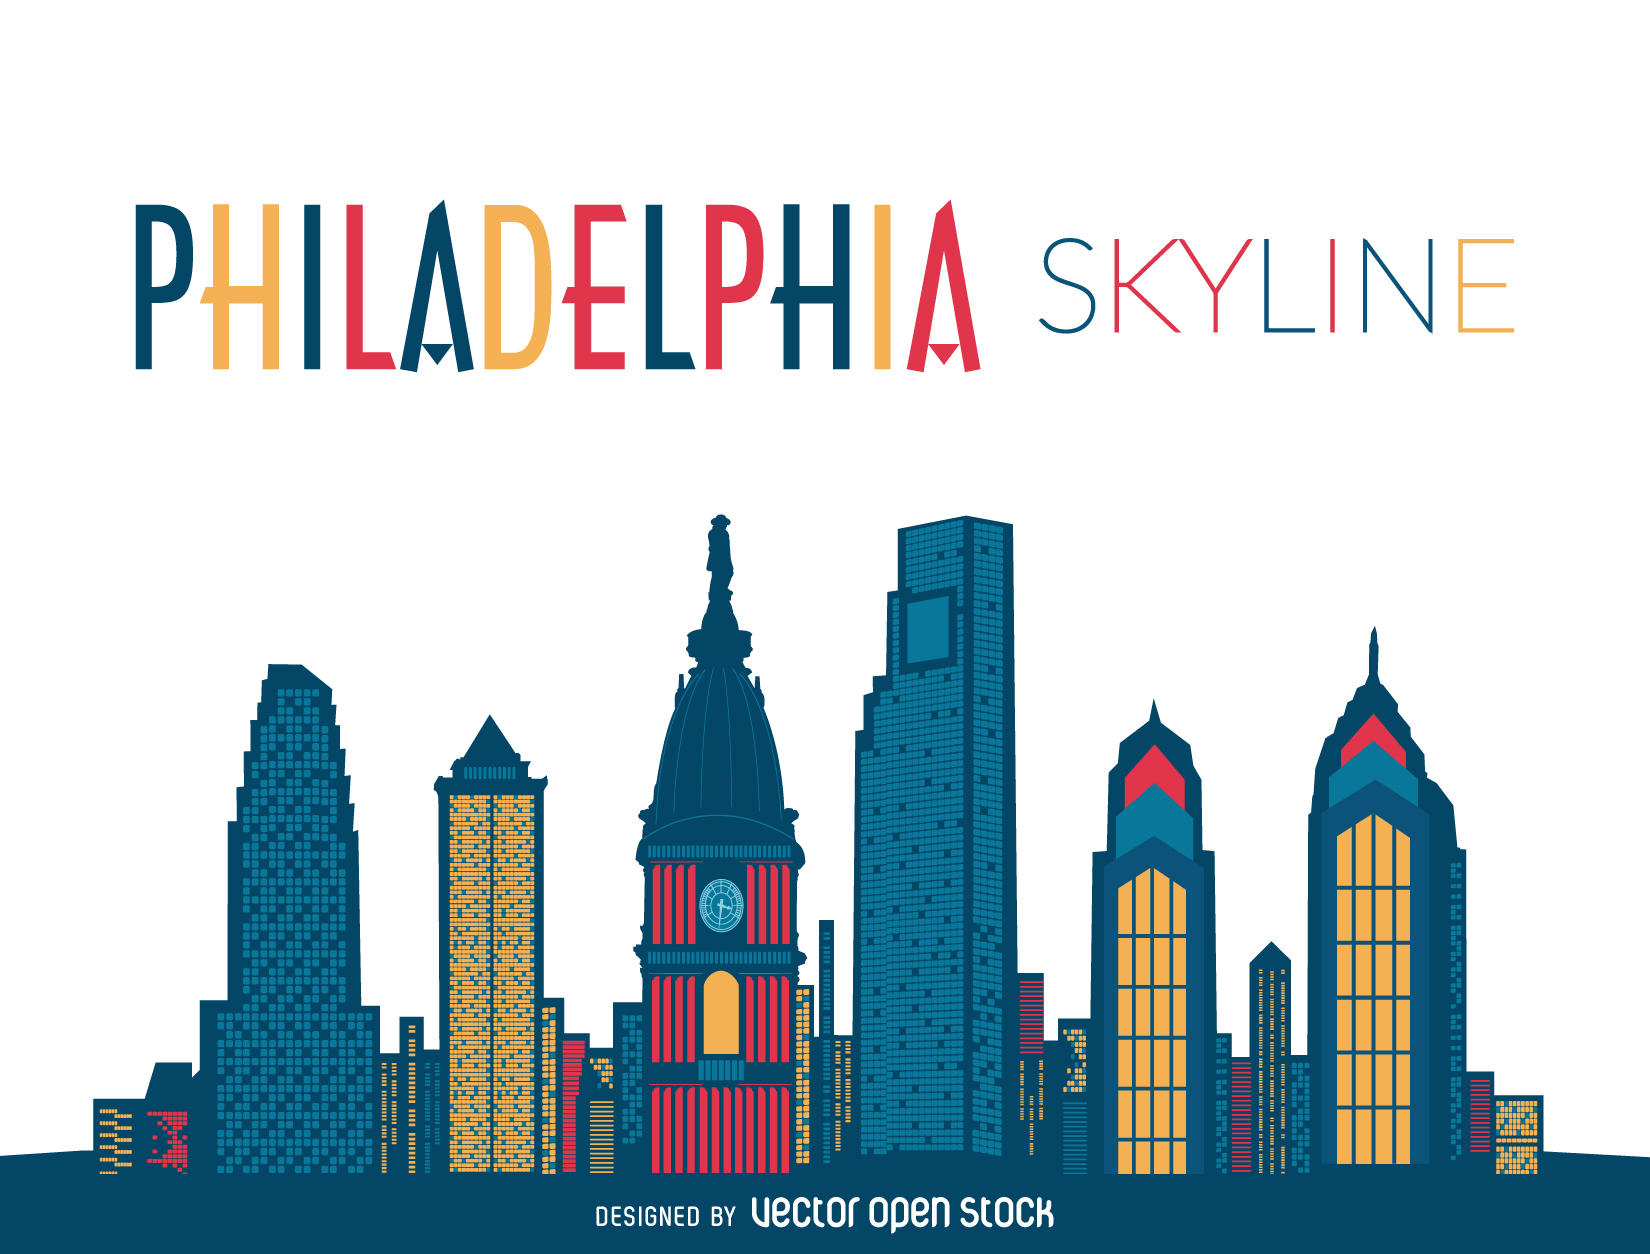 1650x1254 Modern And Flat Illustration Featuring Philadelphia Skyline